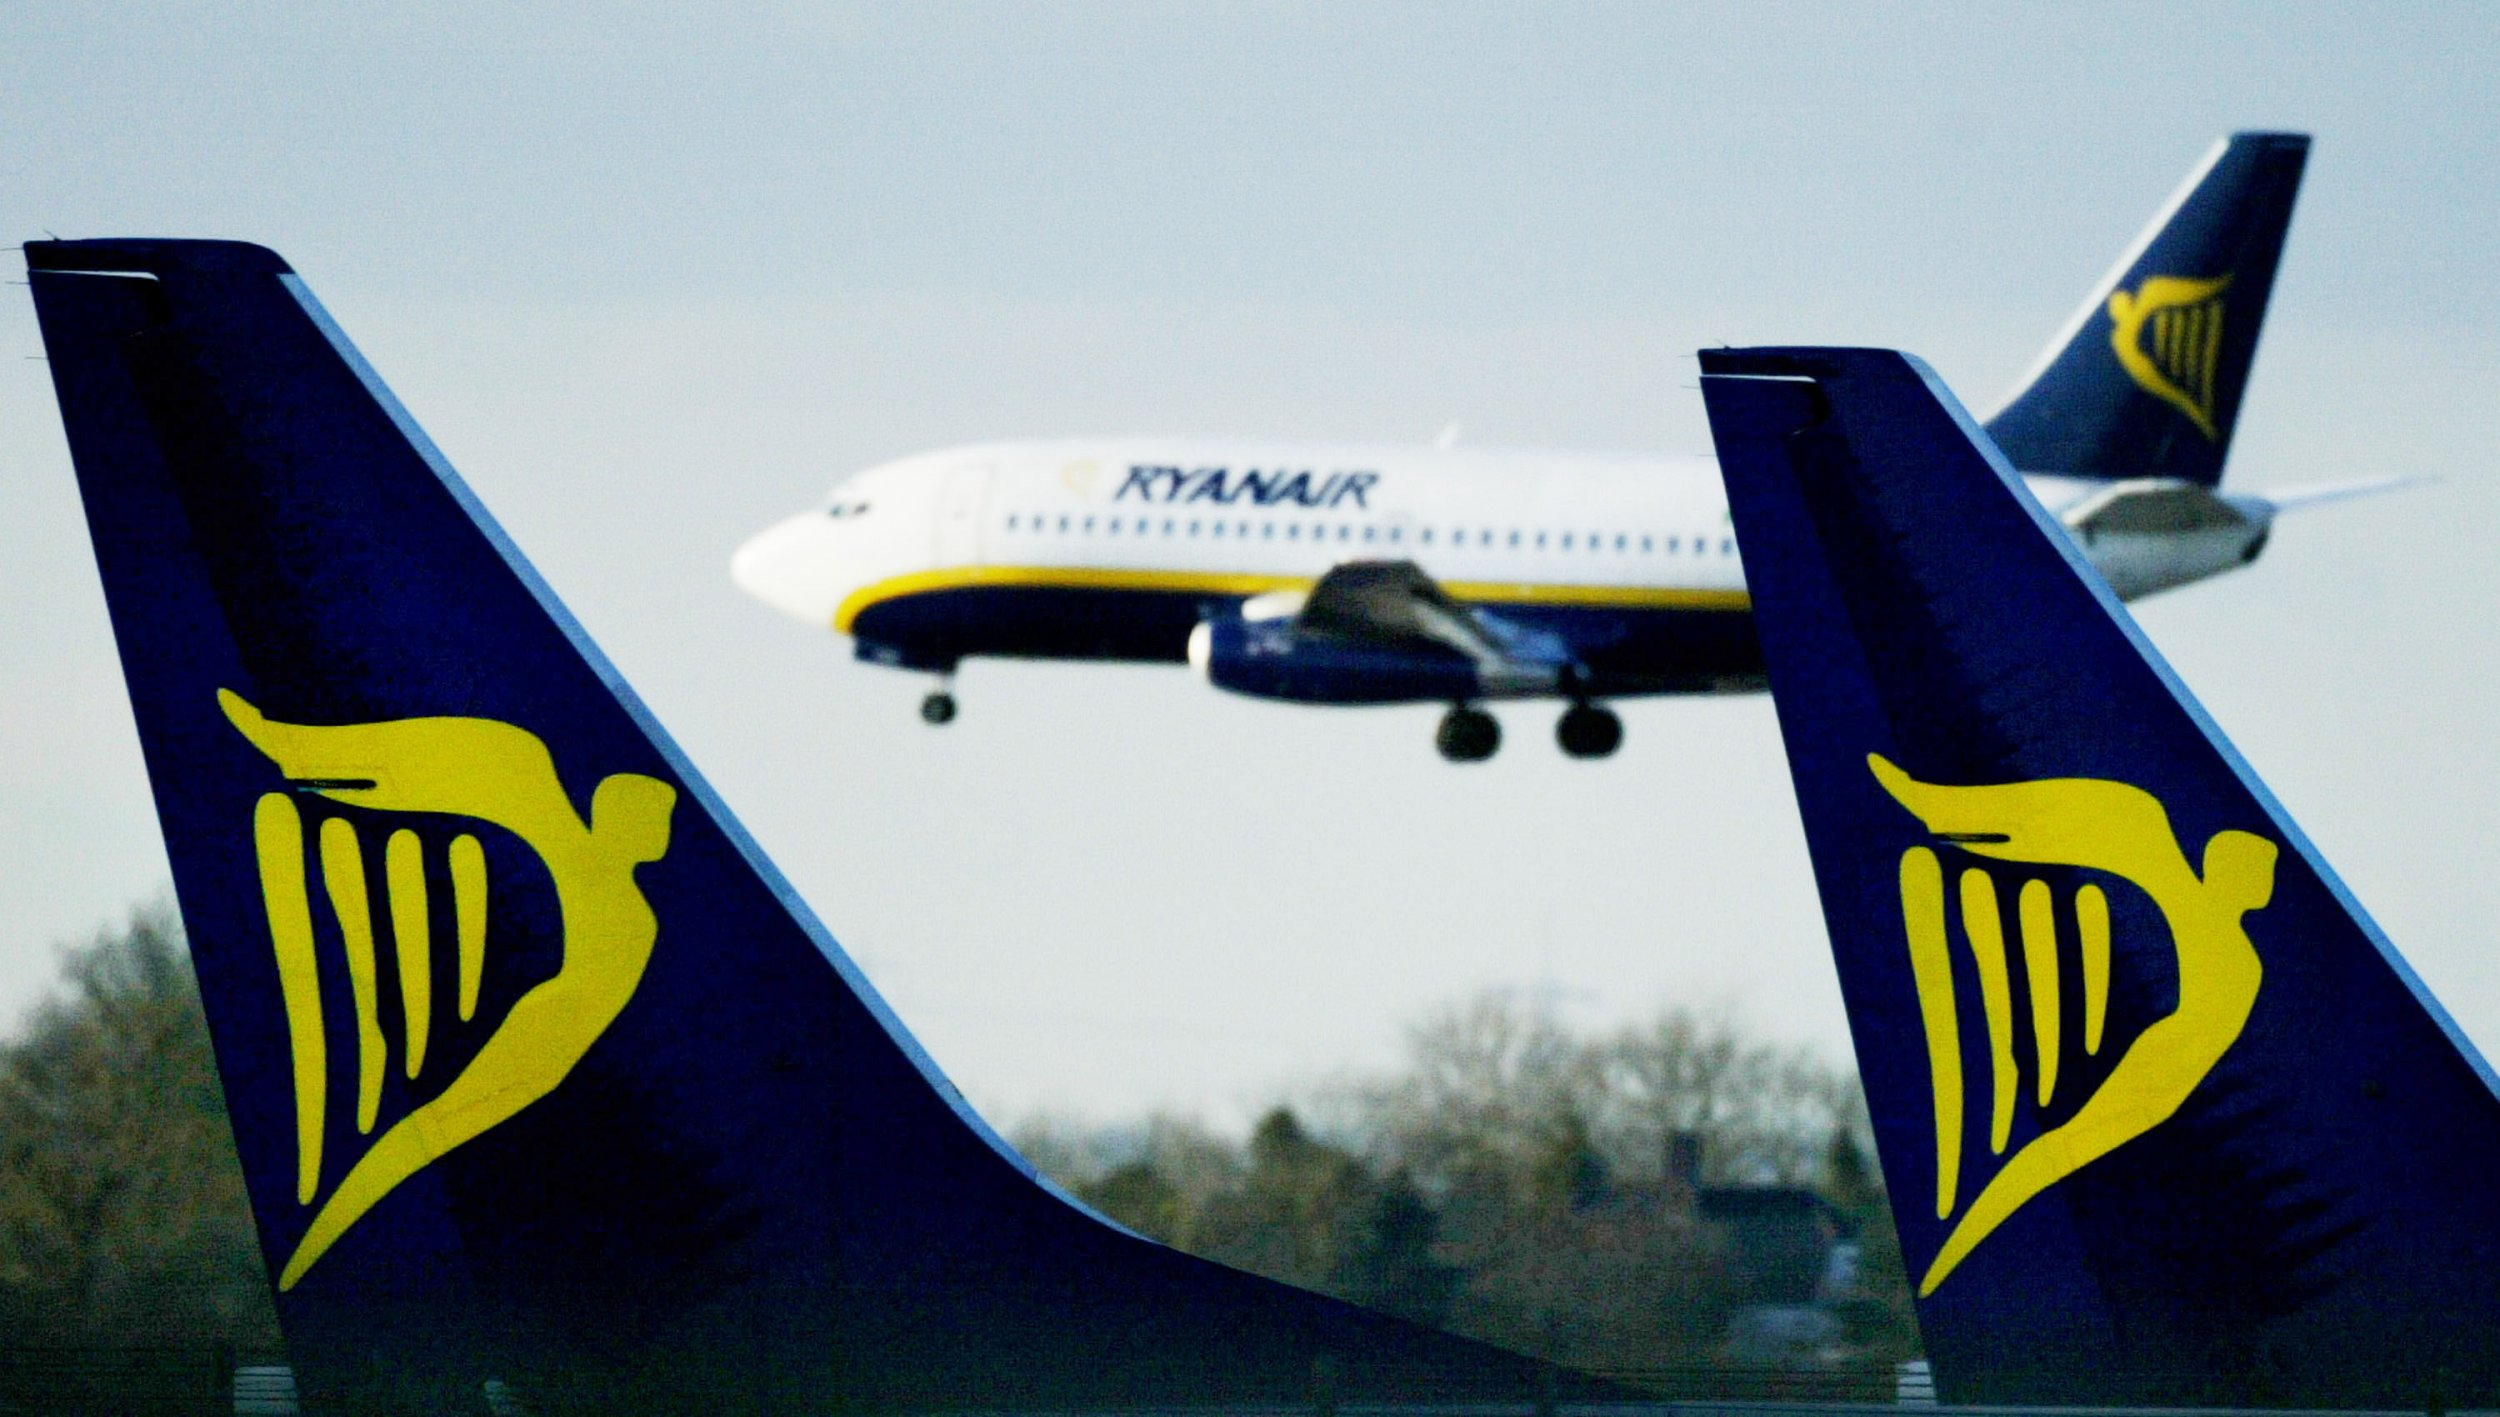 ryanair-getty-images